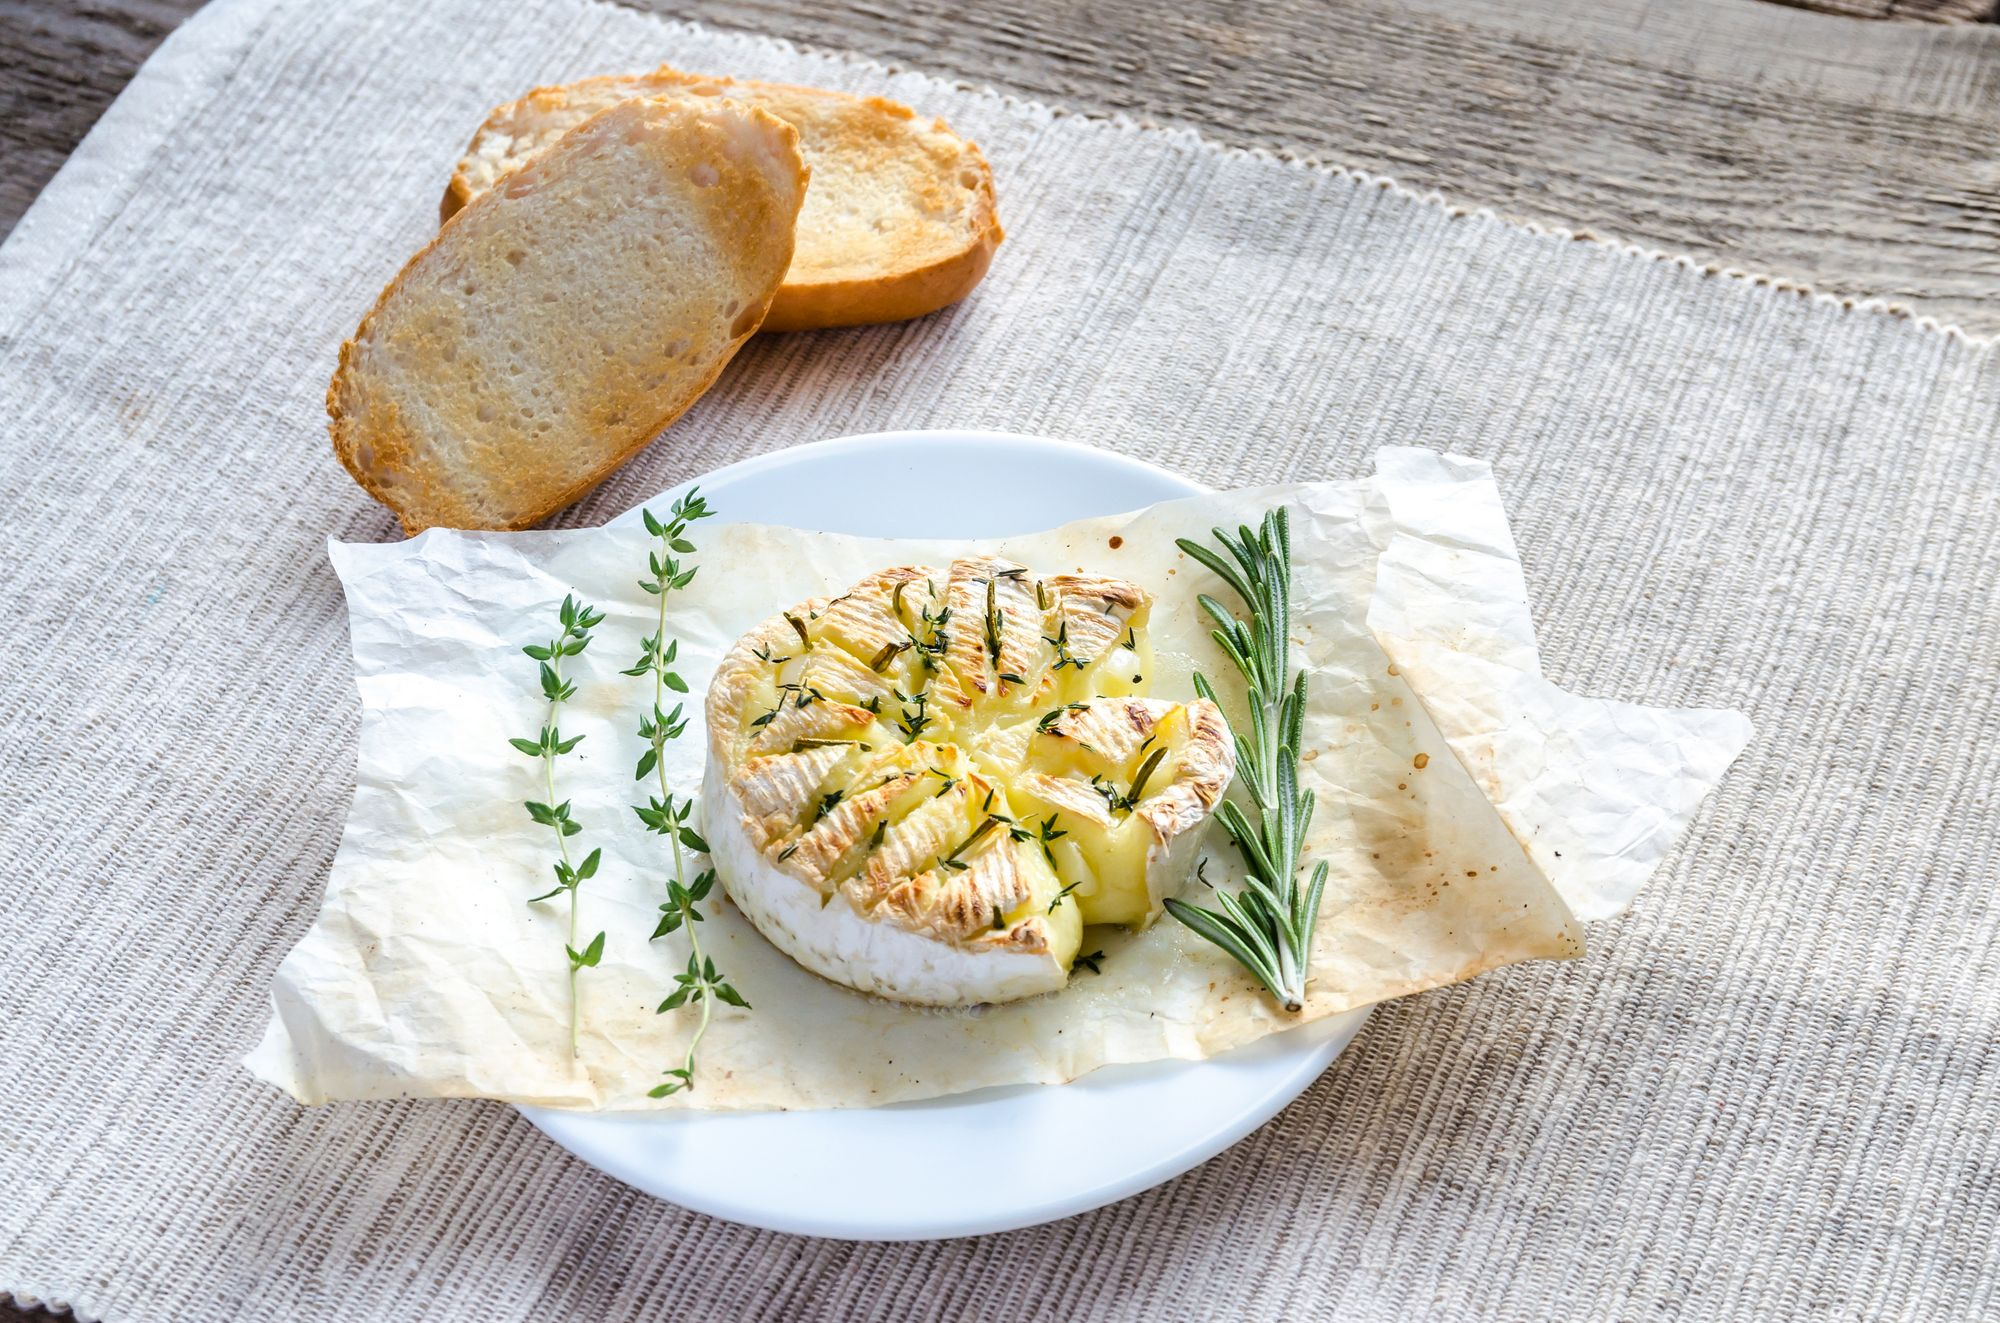 Baked Cheese with Thyme